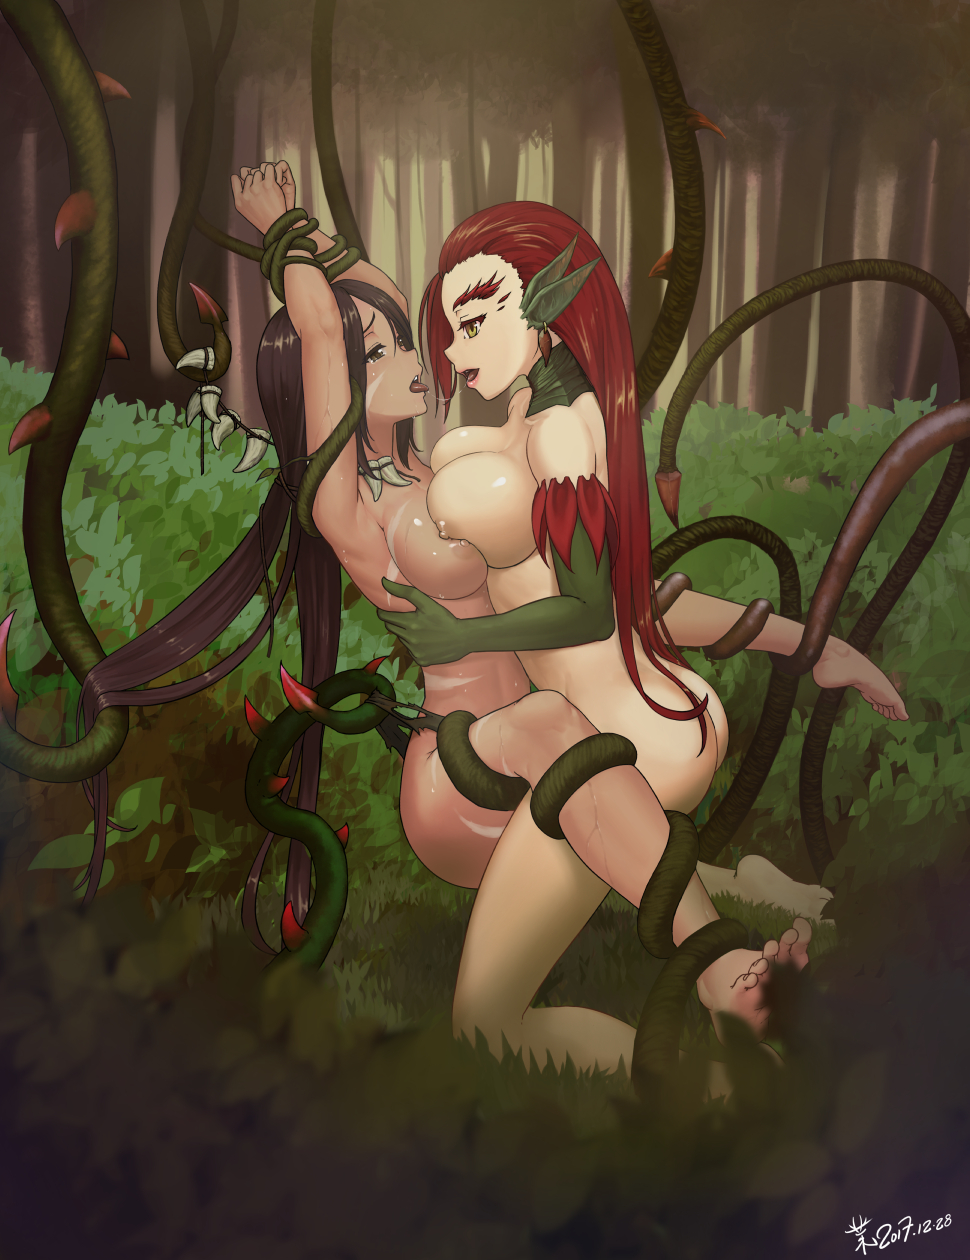 2454780 - League_of_Legends Nidalee Zyra